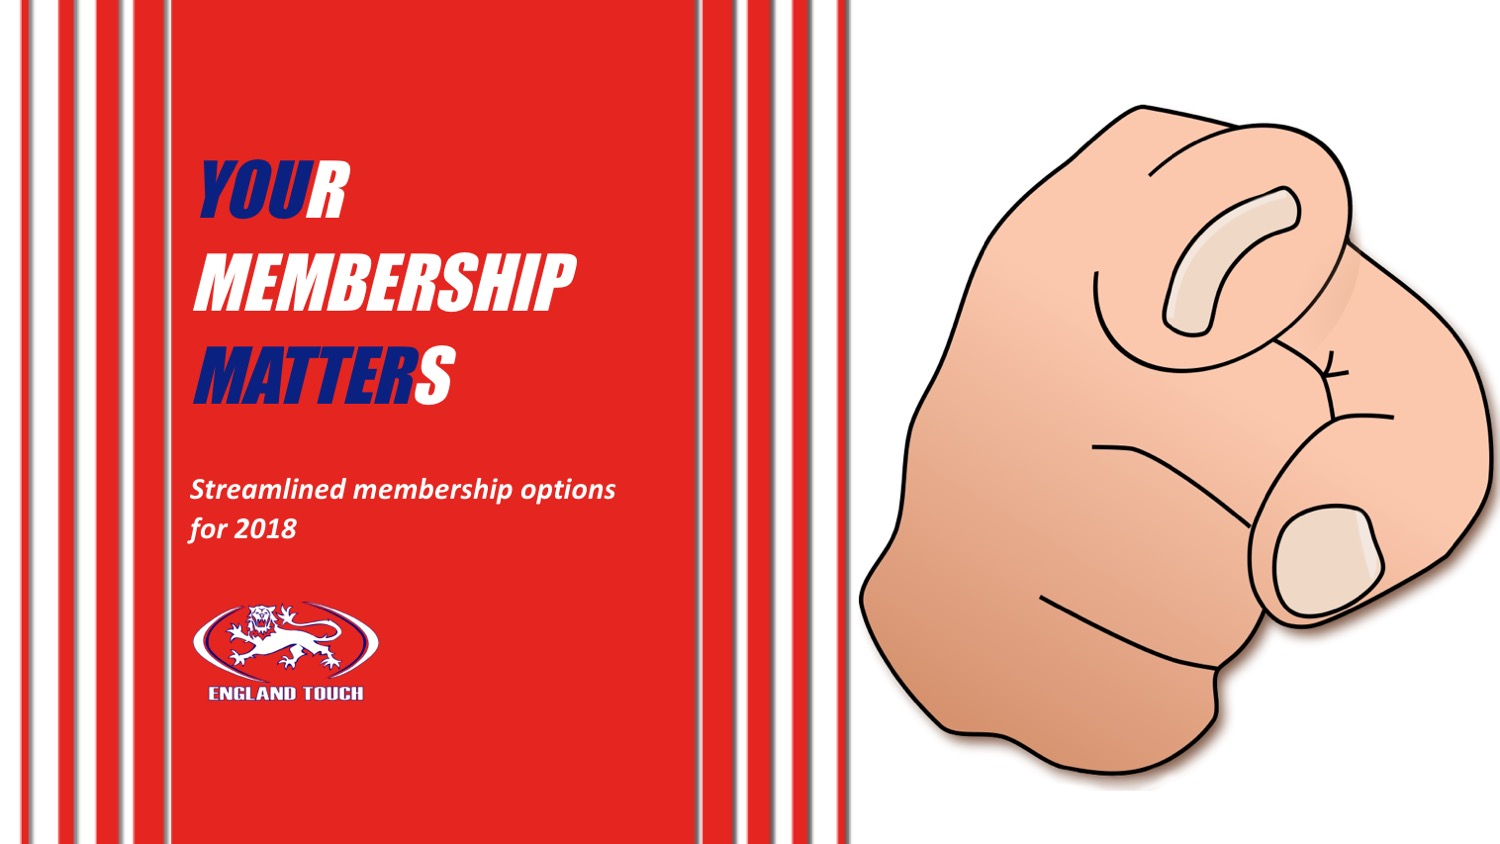 Memberships streamlined for 2018